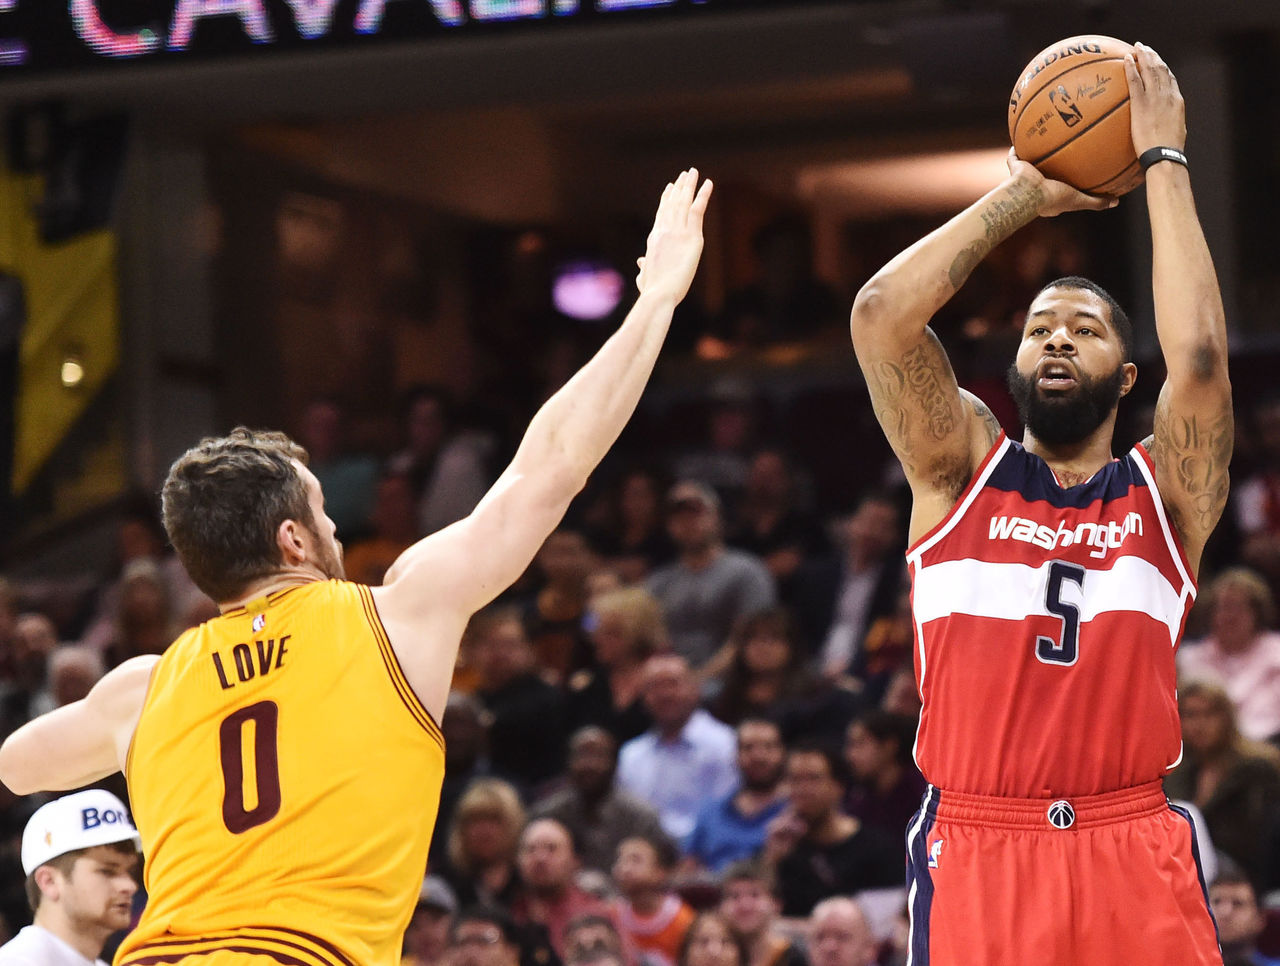 Cropped 2017 03 26t004254z 271963756 nocid rtrmadp 3 nba washington wizards at cleveland cavaliers